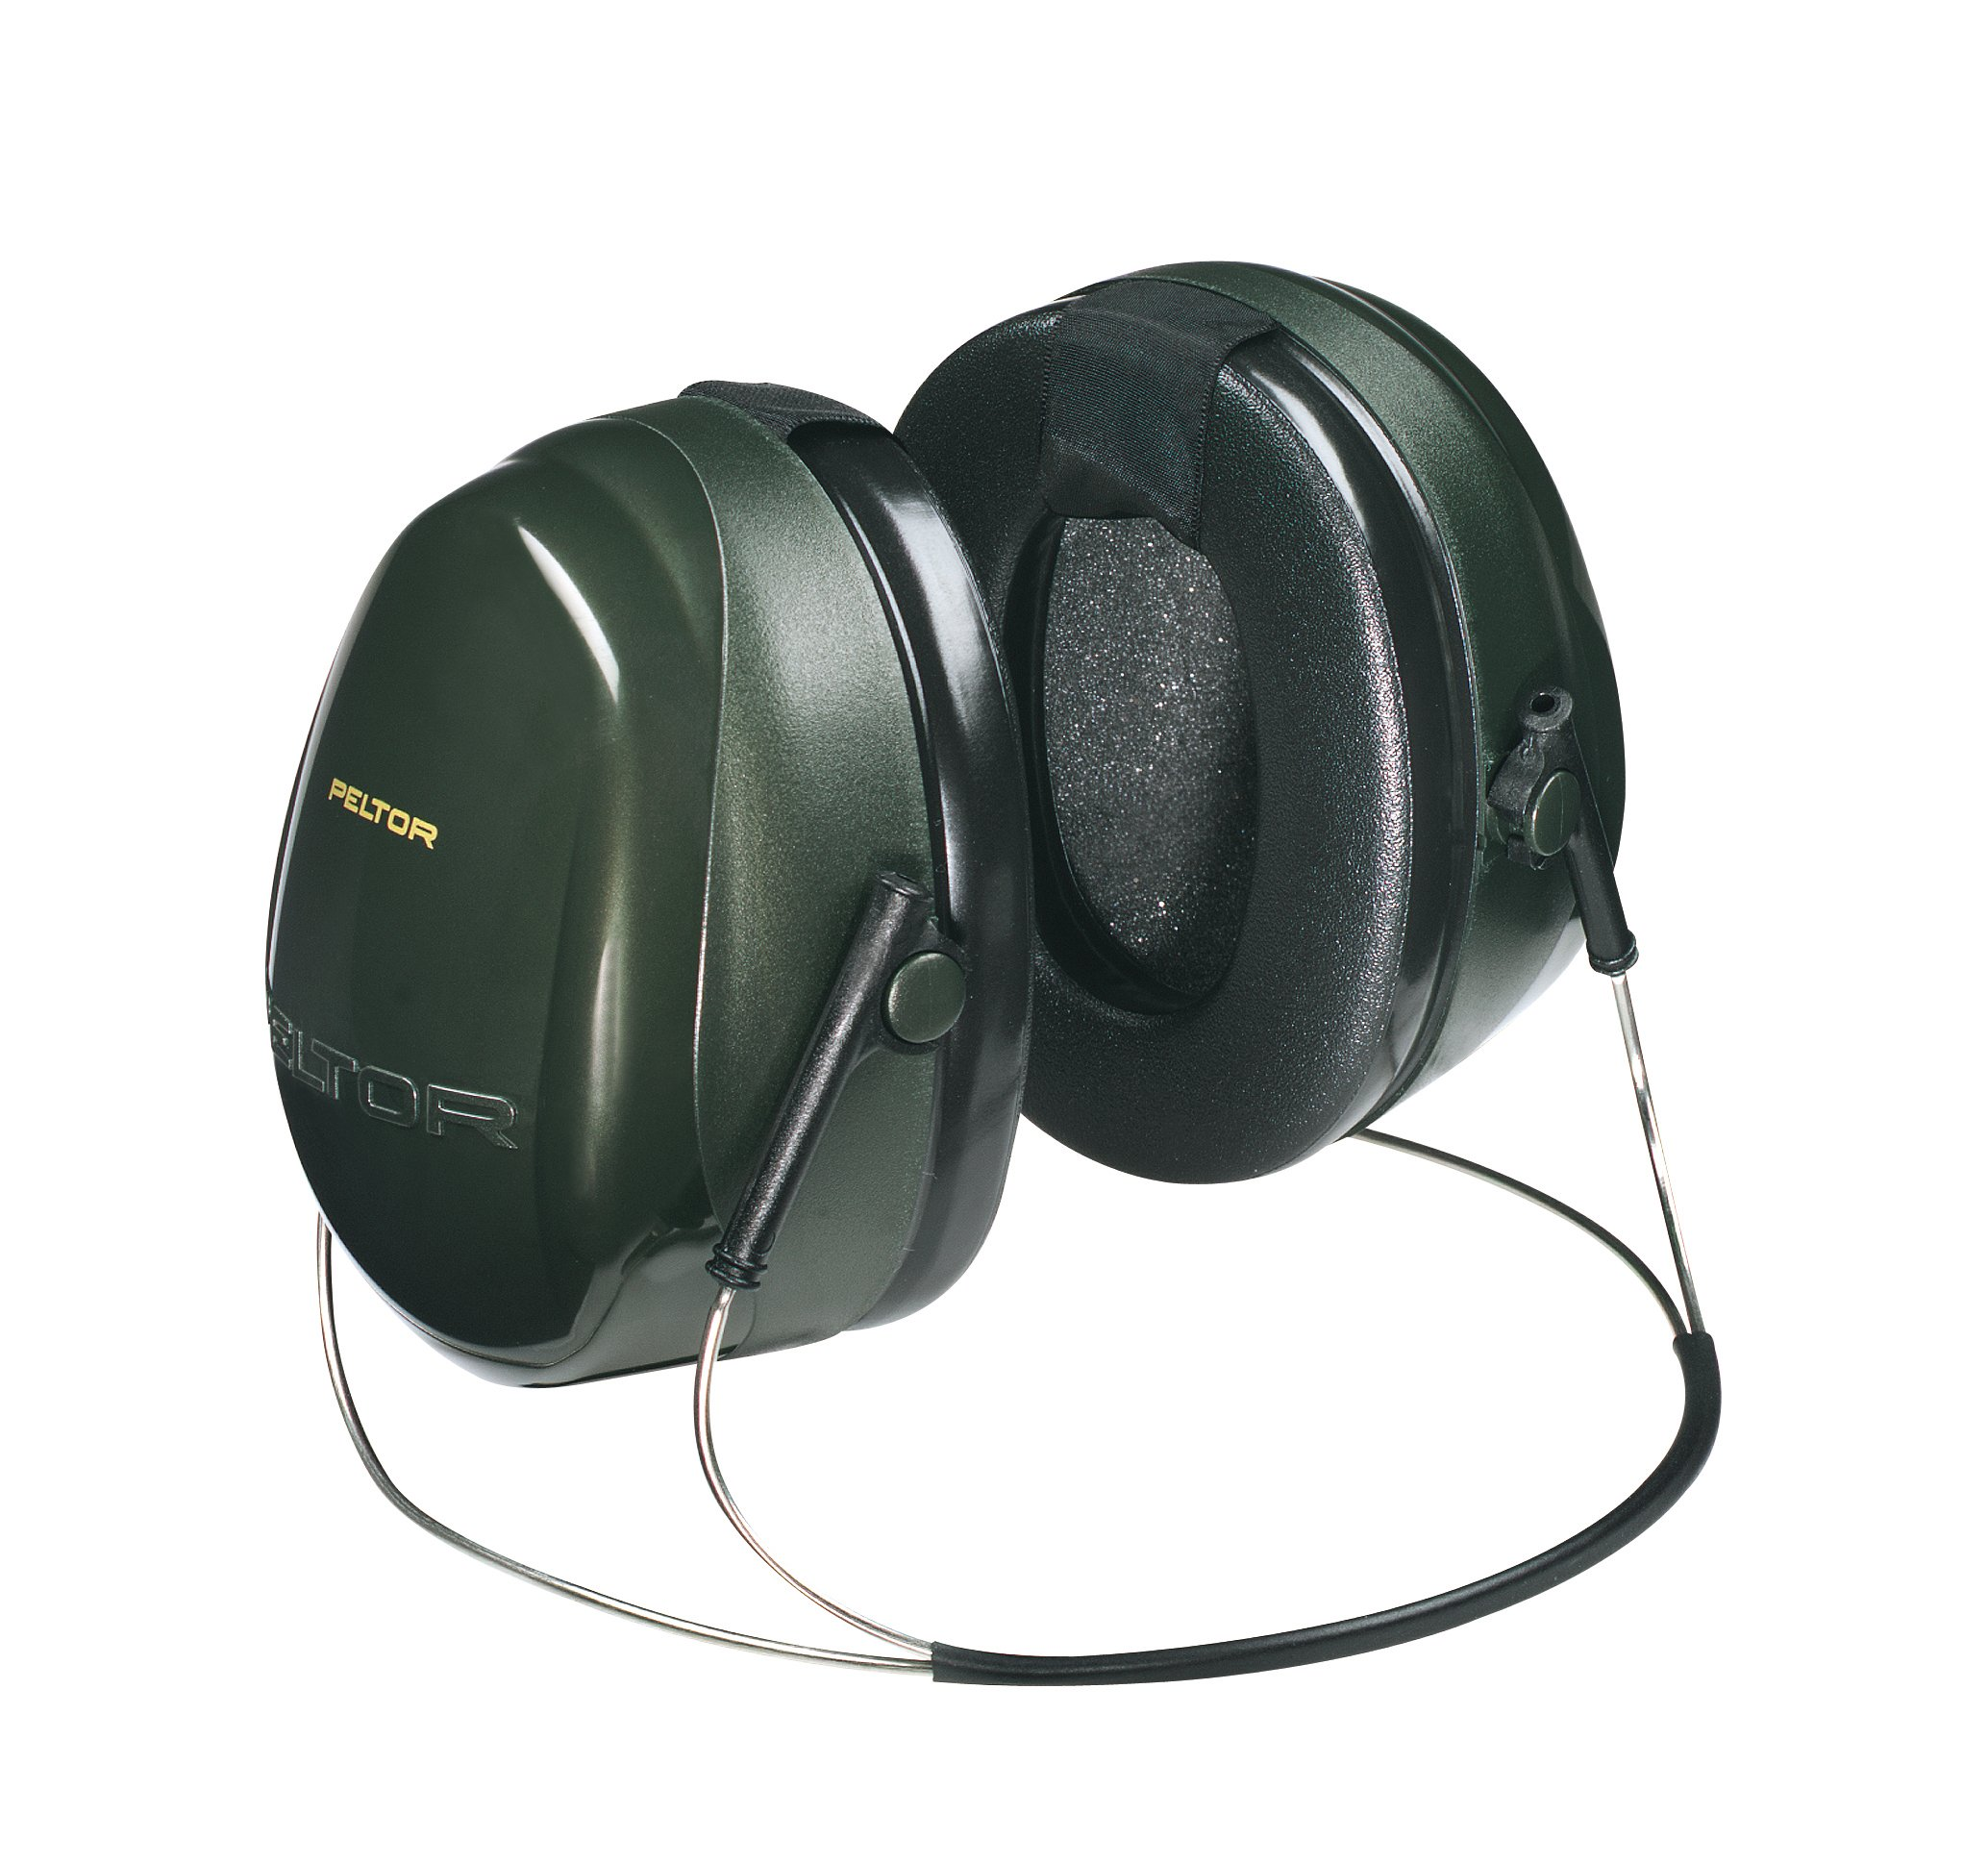 3M Peltor Optime 101 Behind-the-Head Earmuffs, Hearing Conservation H7B